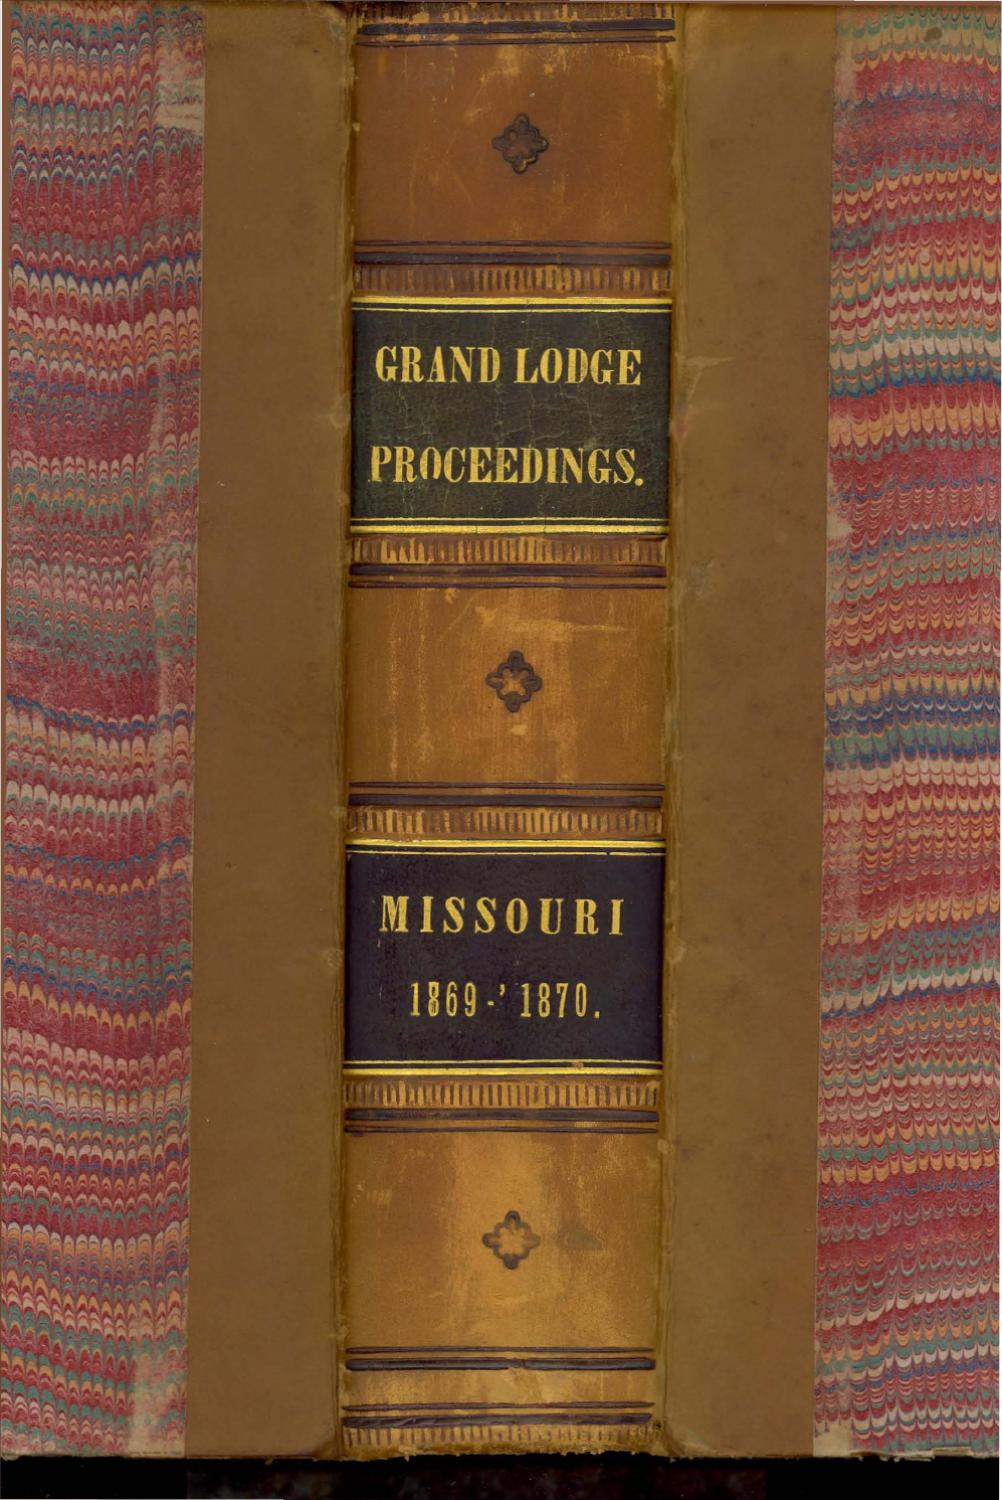 Fischer Haworth Sessel 1869 Proceedings Grand Lodge Of Missouri Volume 2